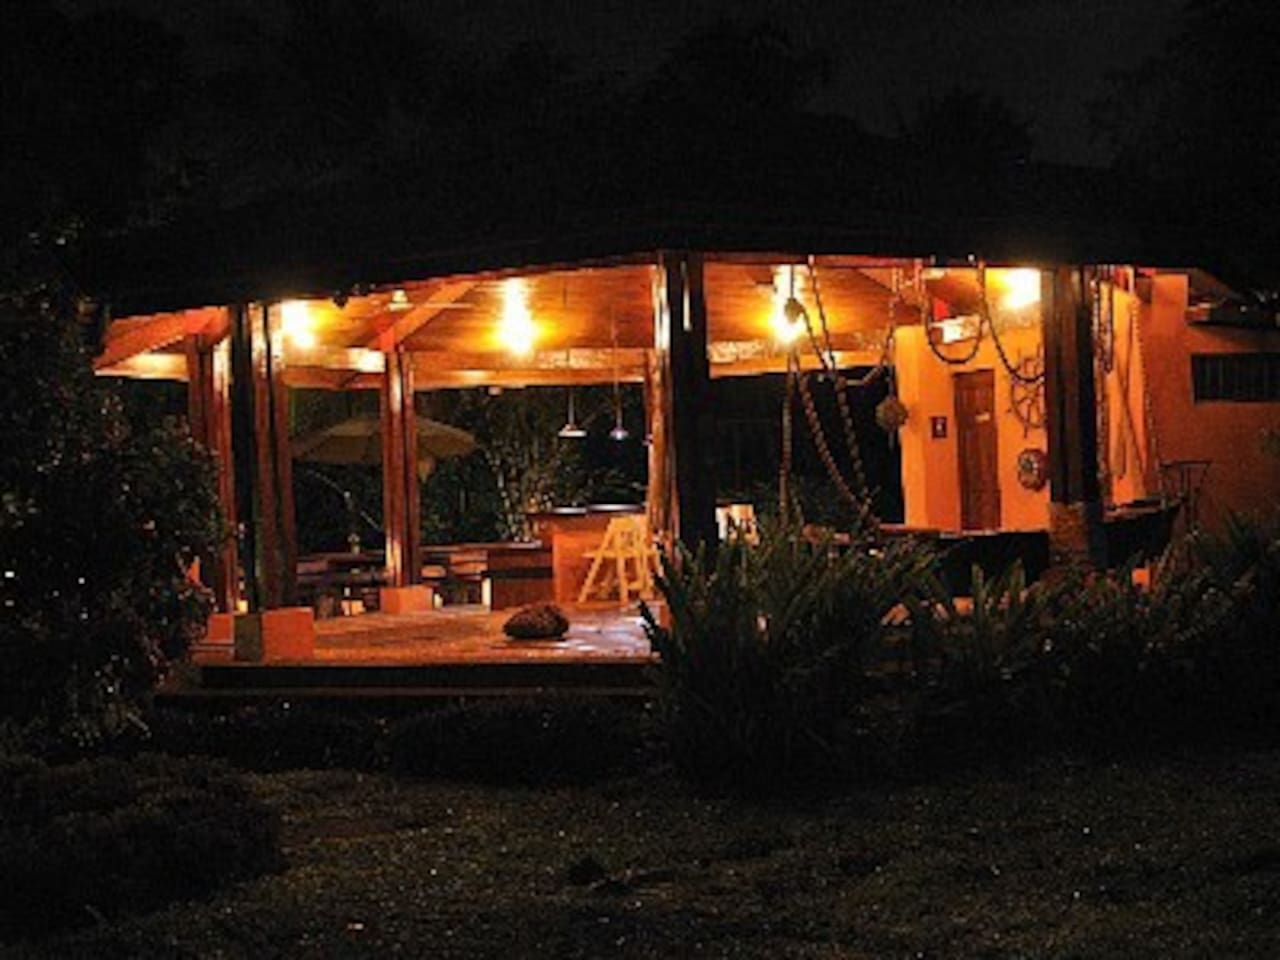 Gazeebo at night, in front of the house